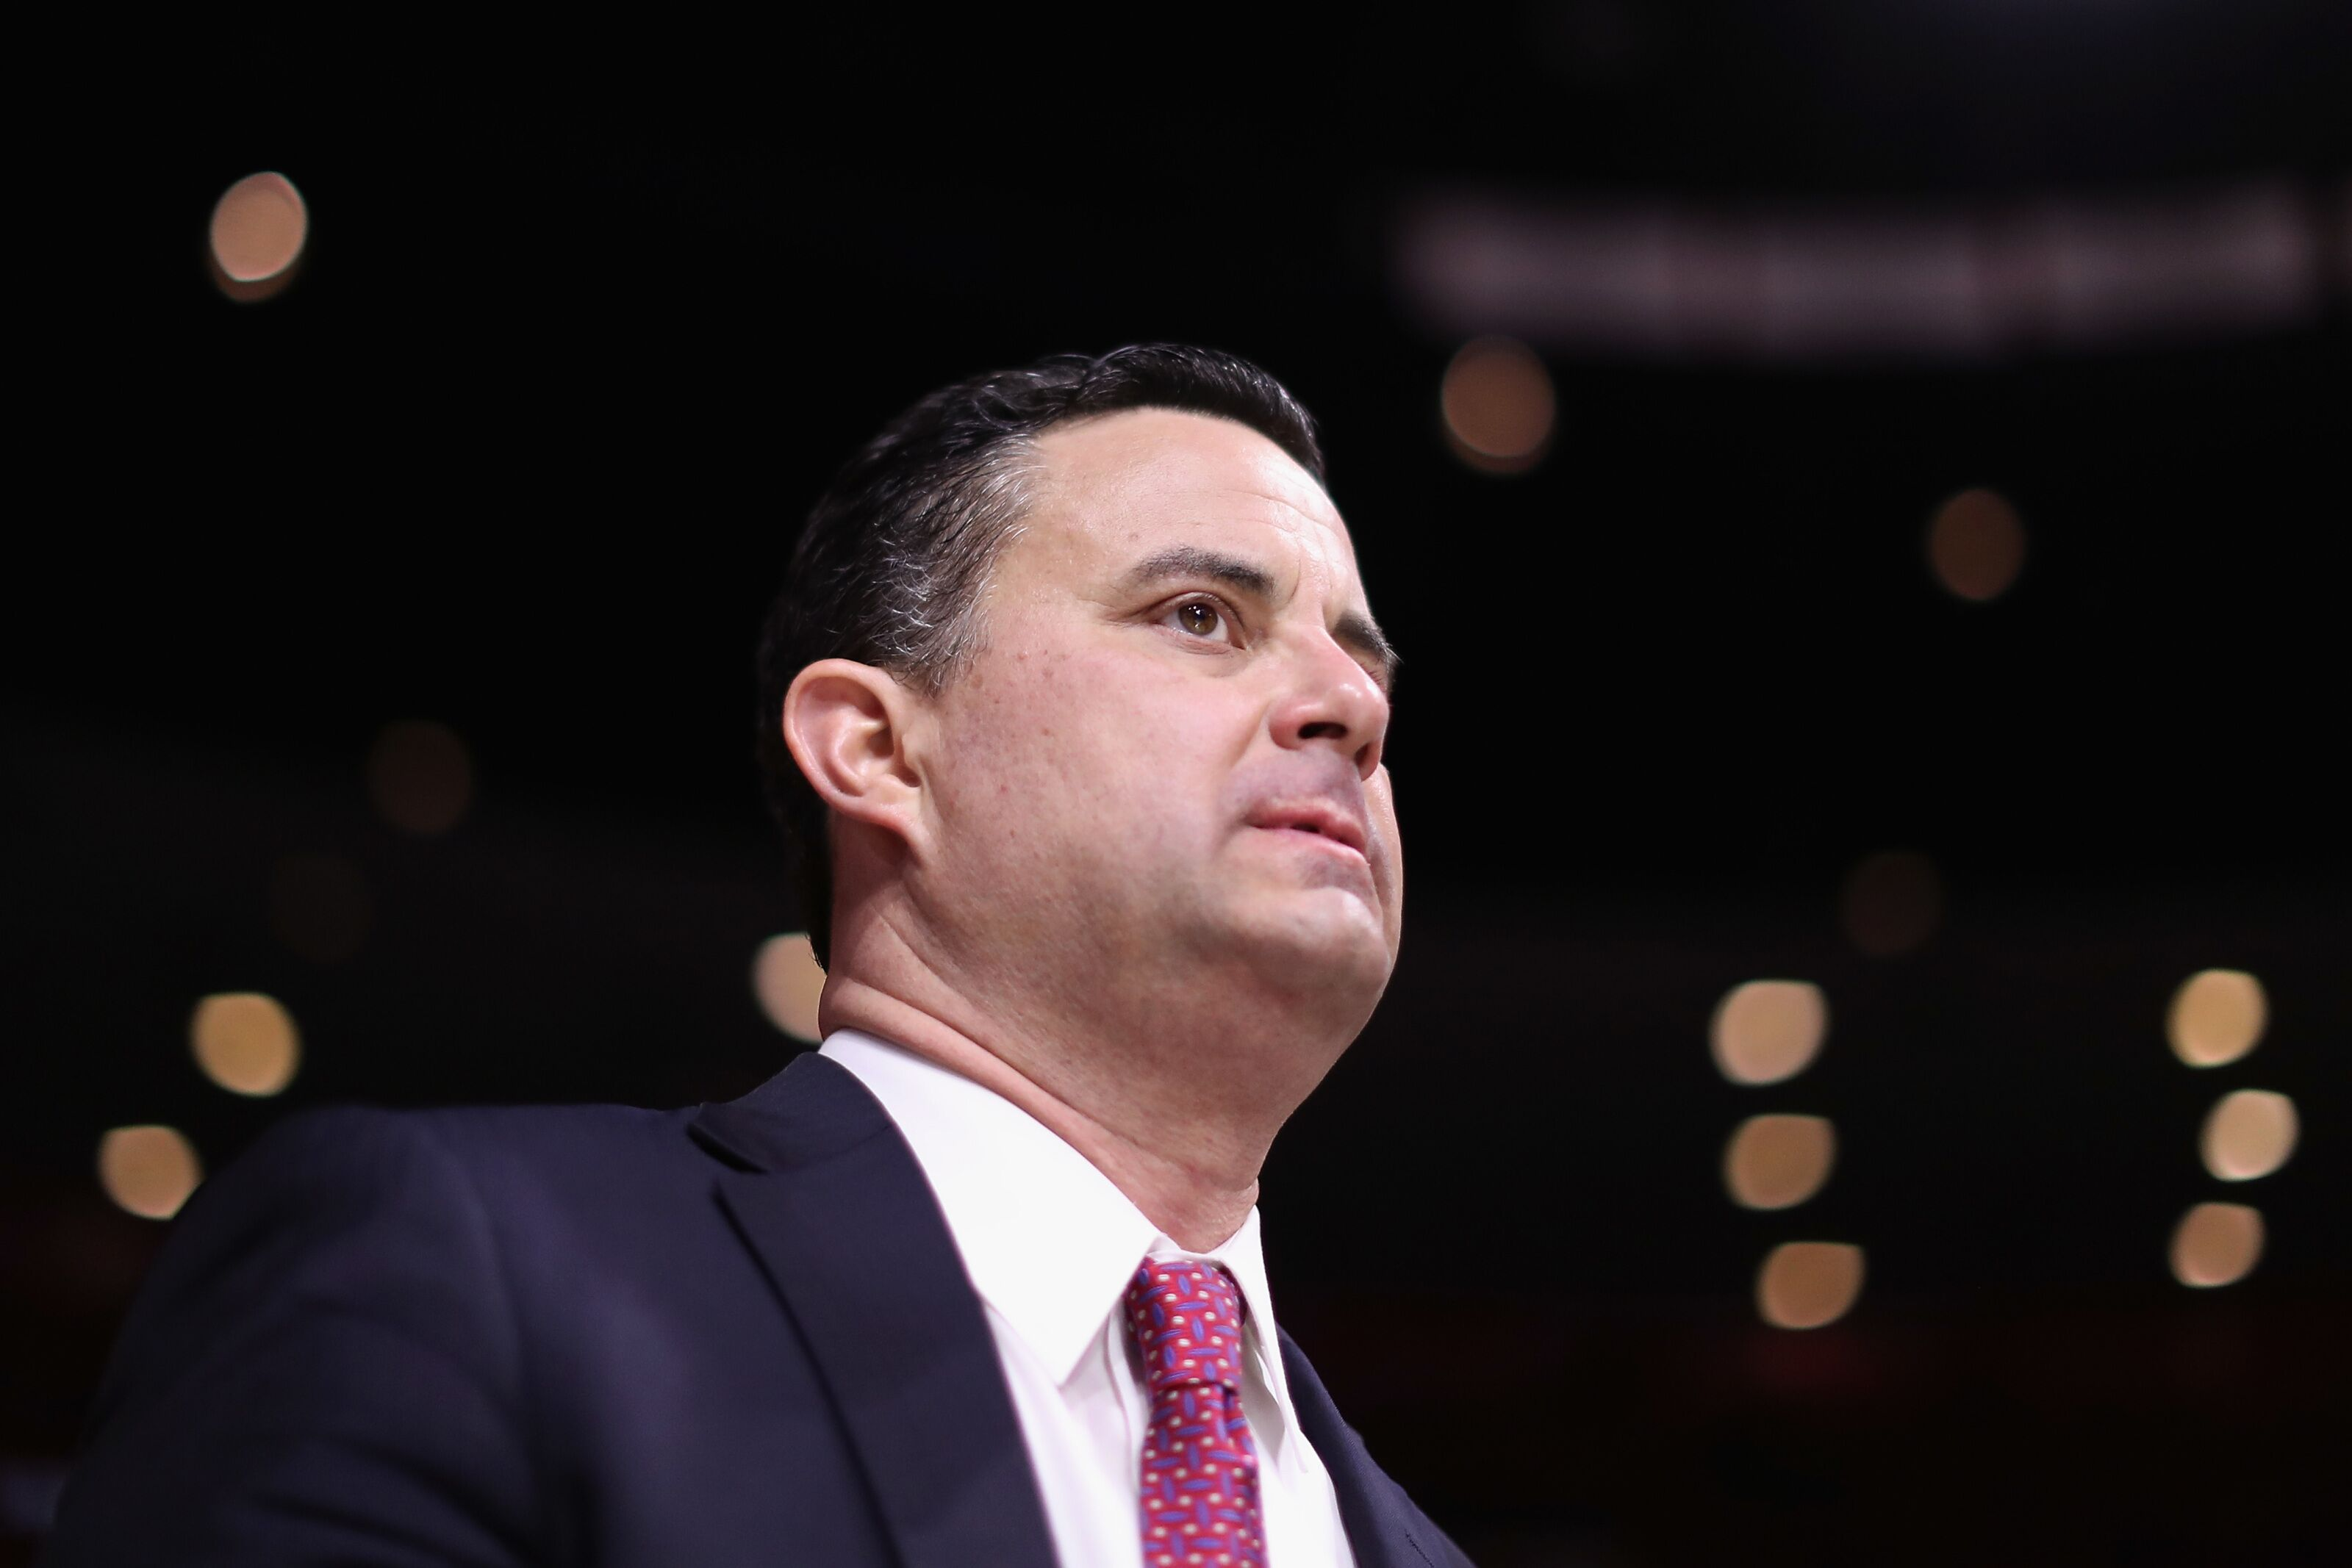 Arizona and Sean Miller faces more criticism, despite no clear evidence